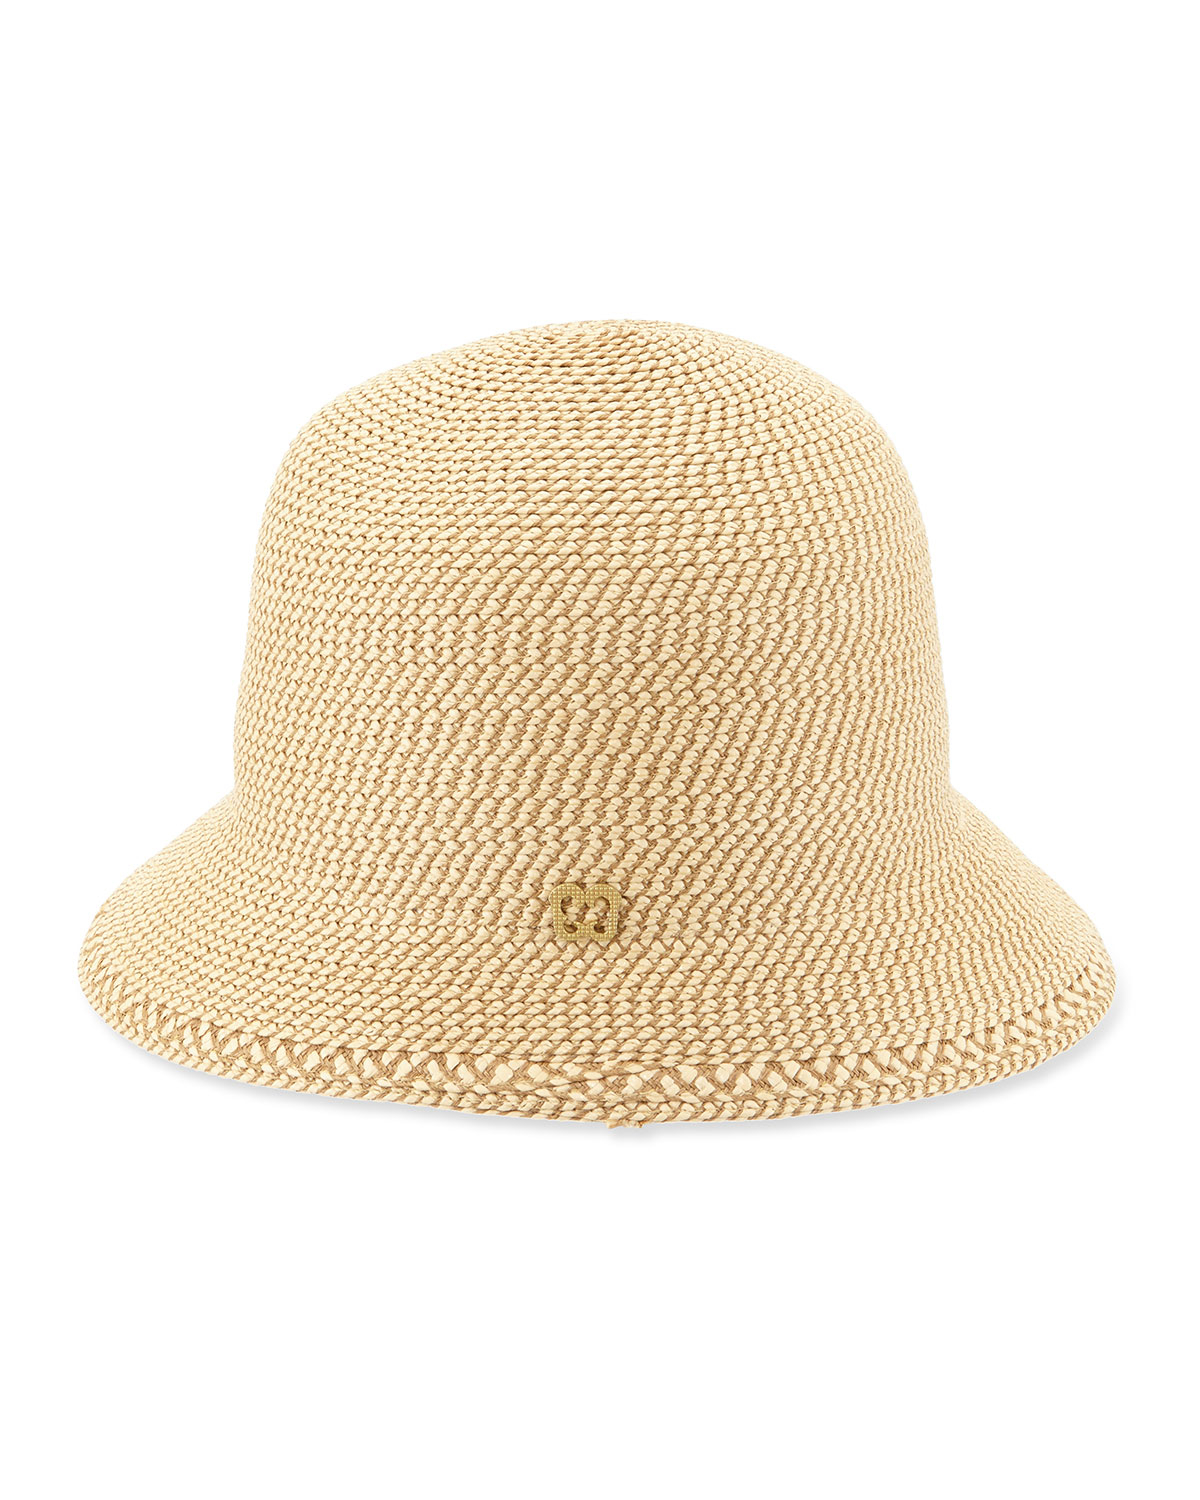 801116d9a7779 Eric Javits Squishee Bucket Woven Hat in Natural - Lyst